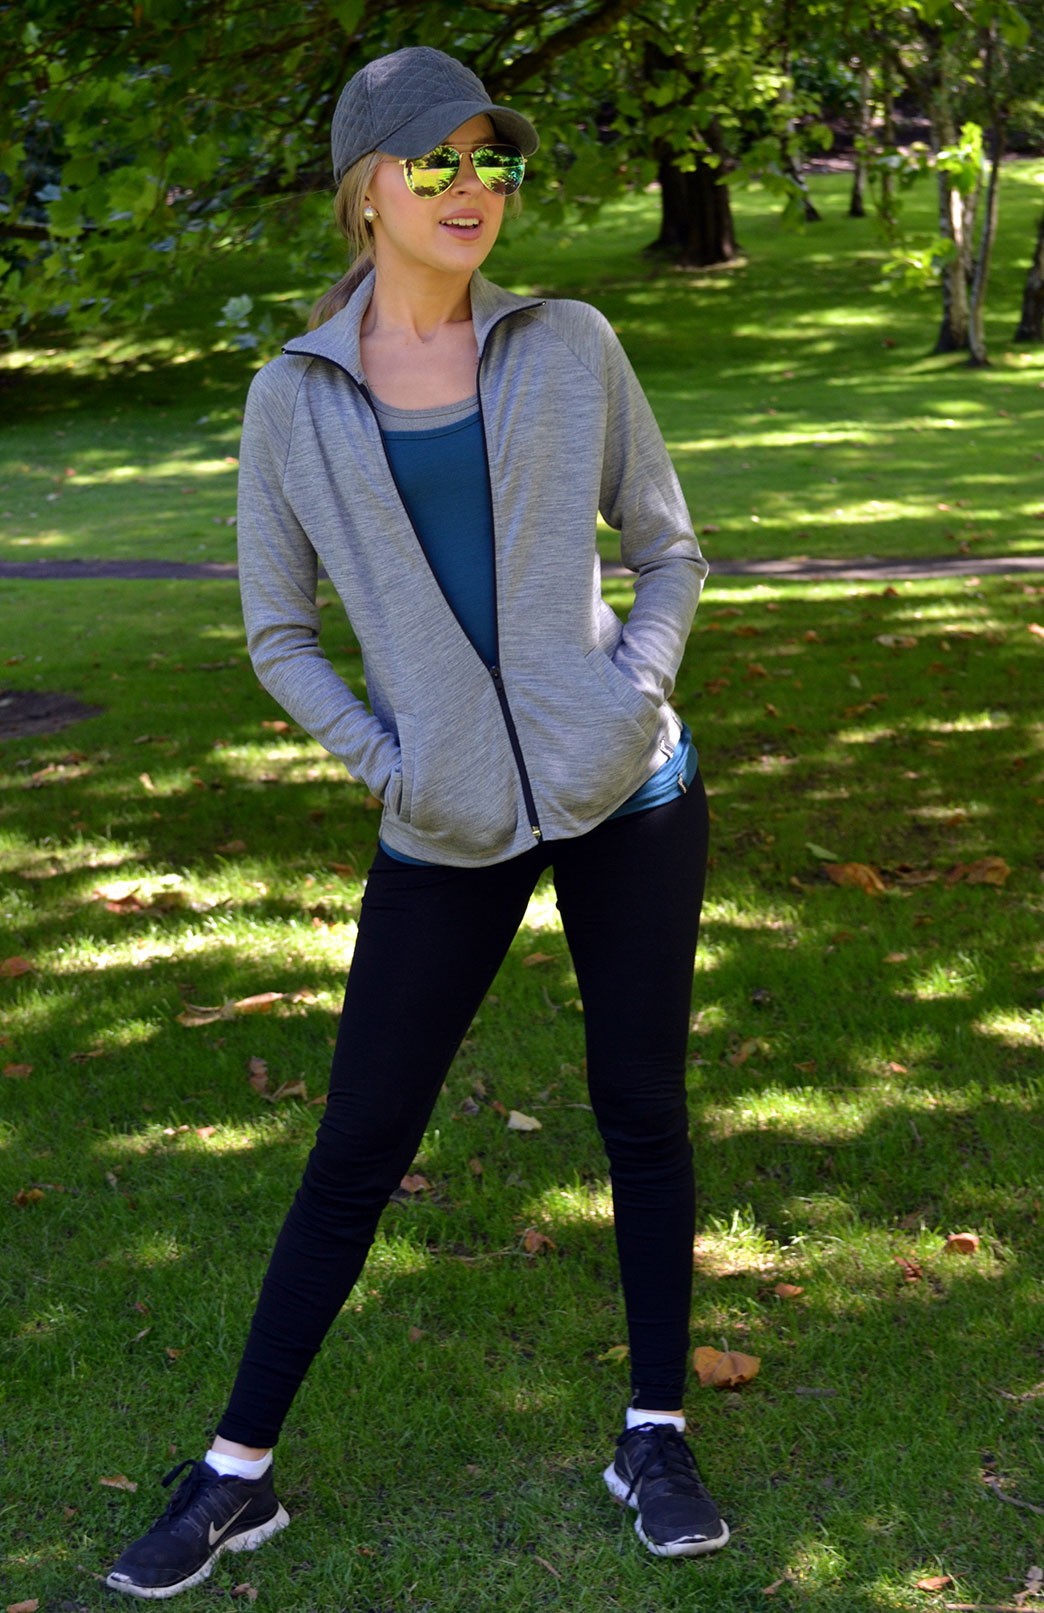 Leggings - 360g - Women's Black Heavyweight Wool Leggings with elastic waistband - Smitten Merino Tasmania Australia